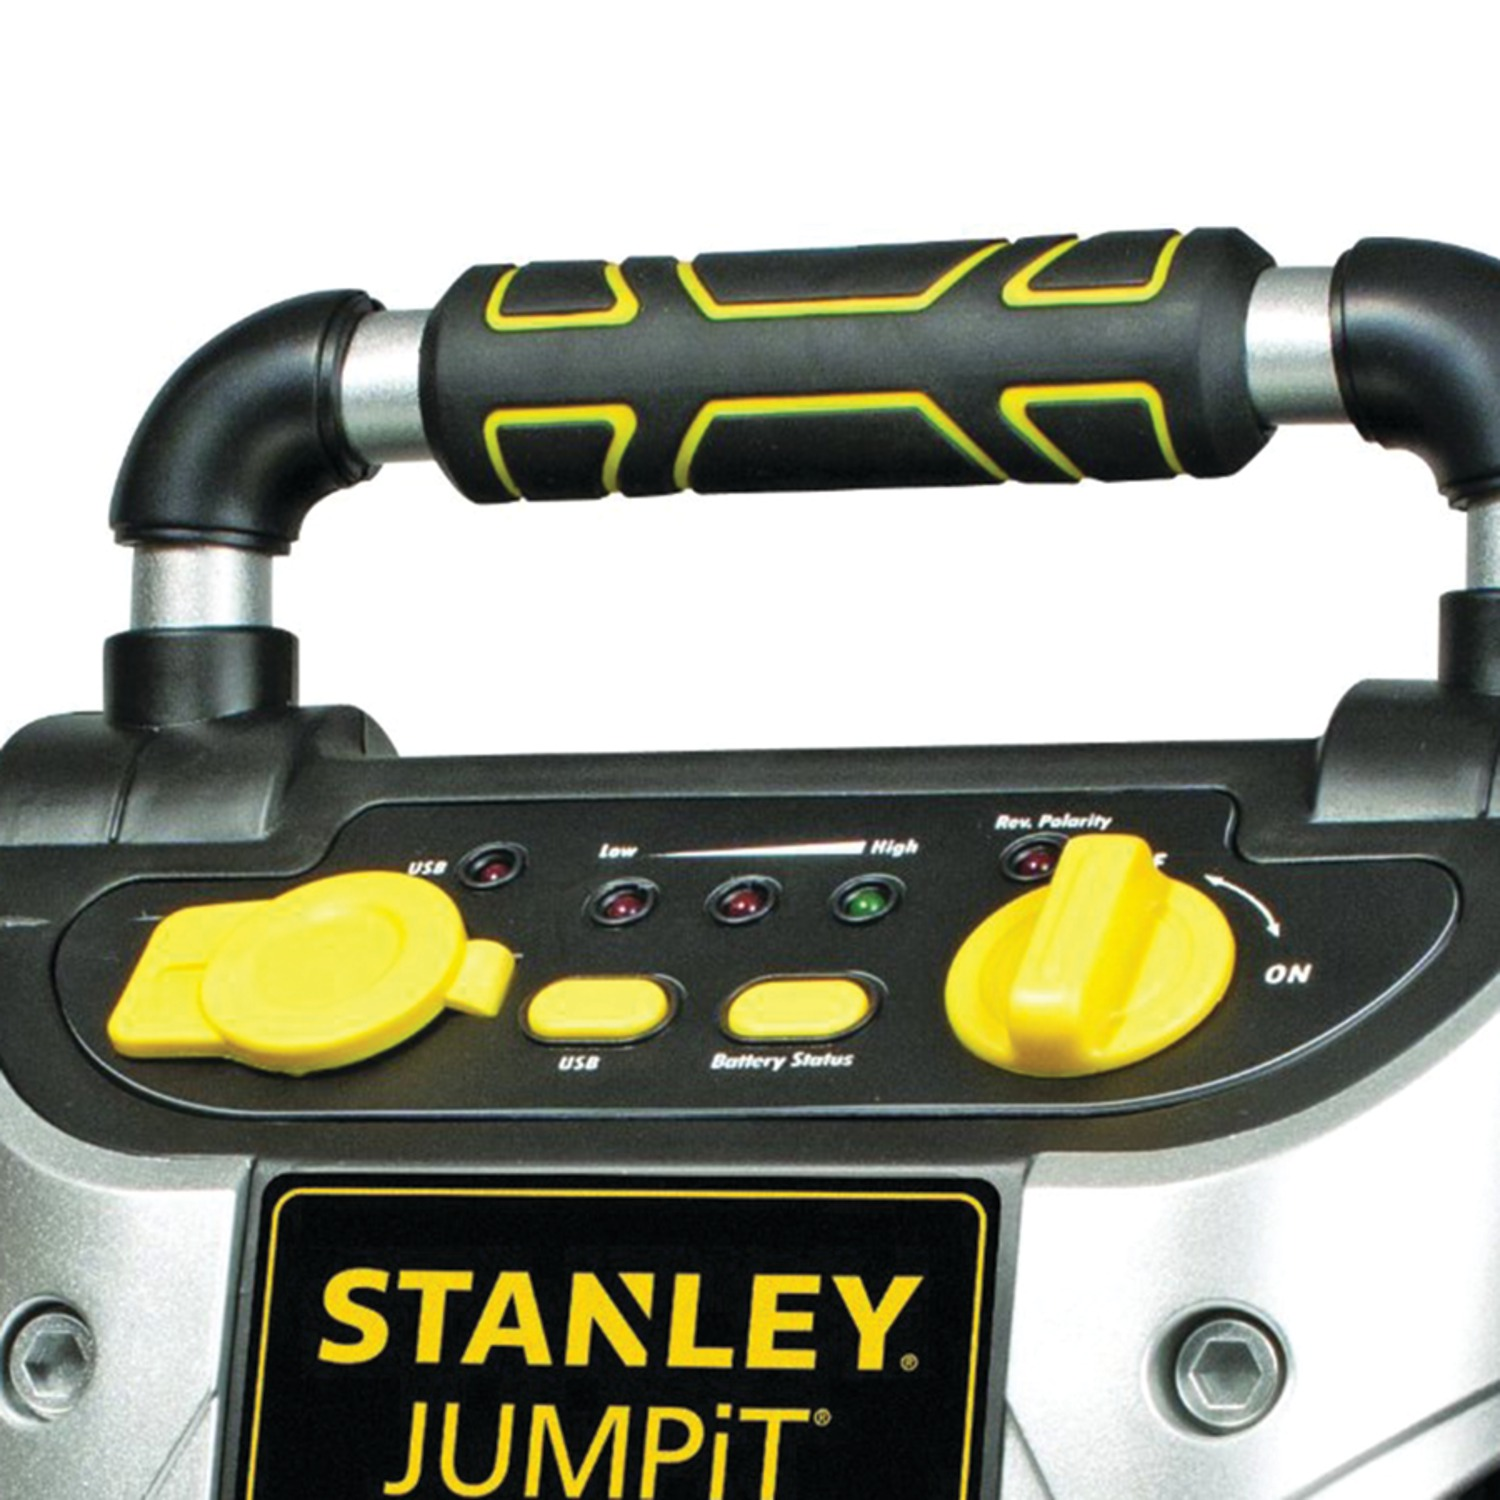 Stanley J5c09 1000 Peak Jump Starter With Air Compressor Dc Shade Motors Can The Polarity Be Reversed A Simple Switch